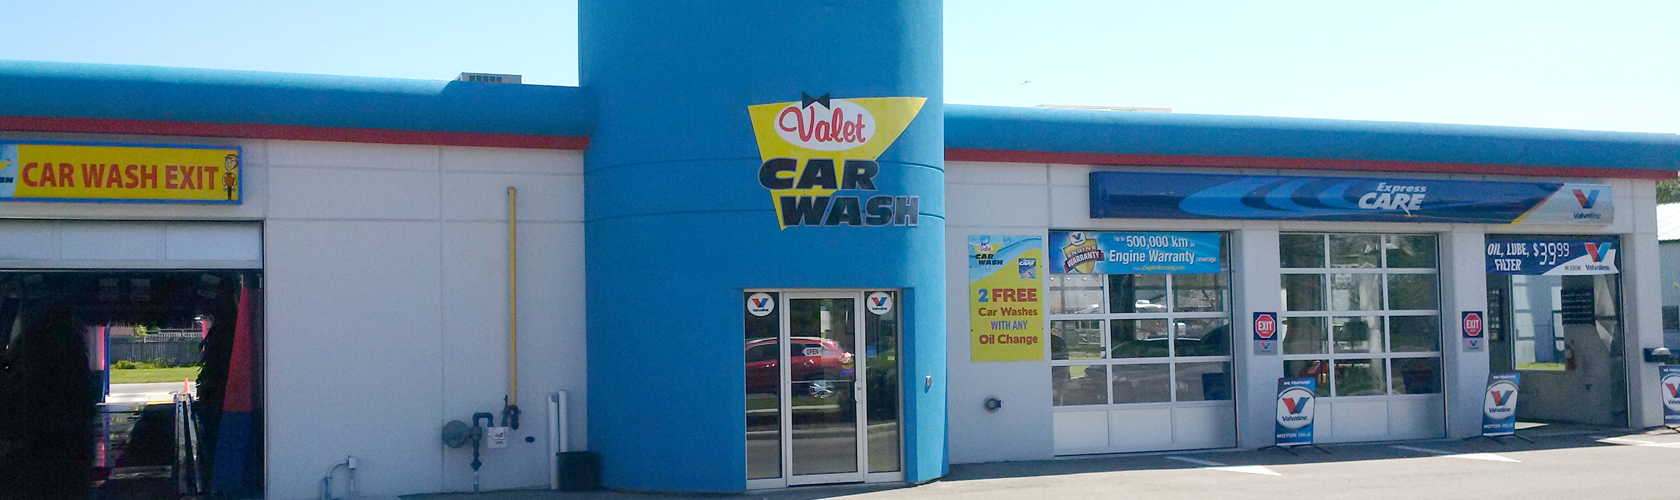 Valet car wash cambridge on solutioingenieria Choice Image